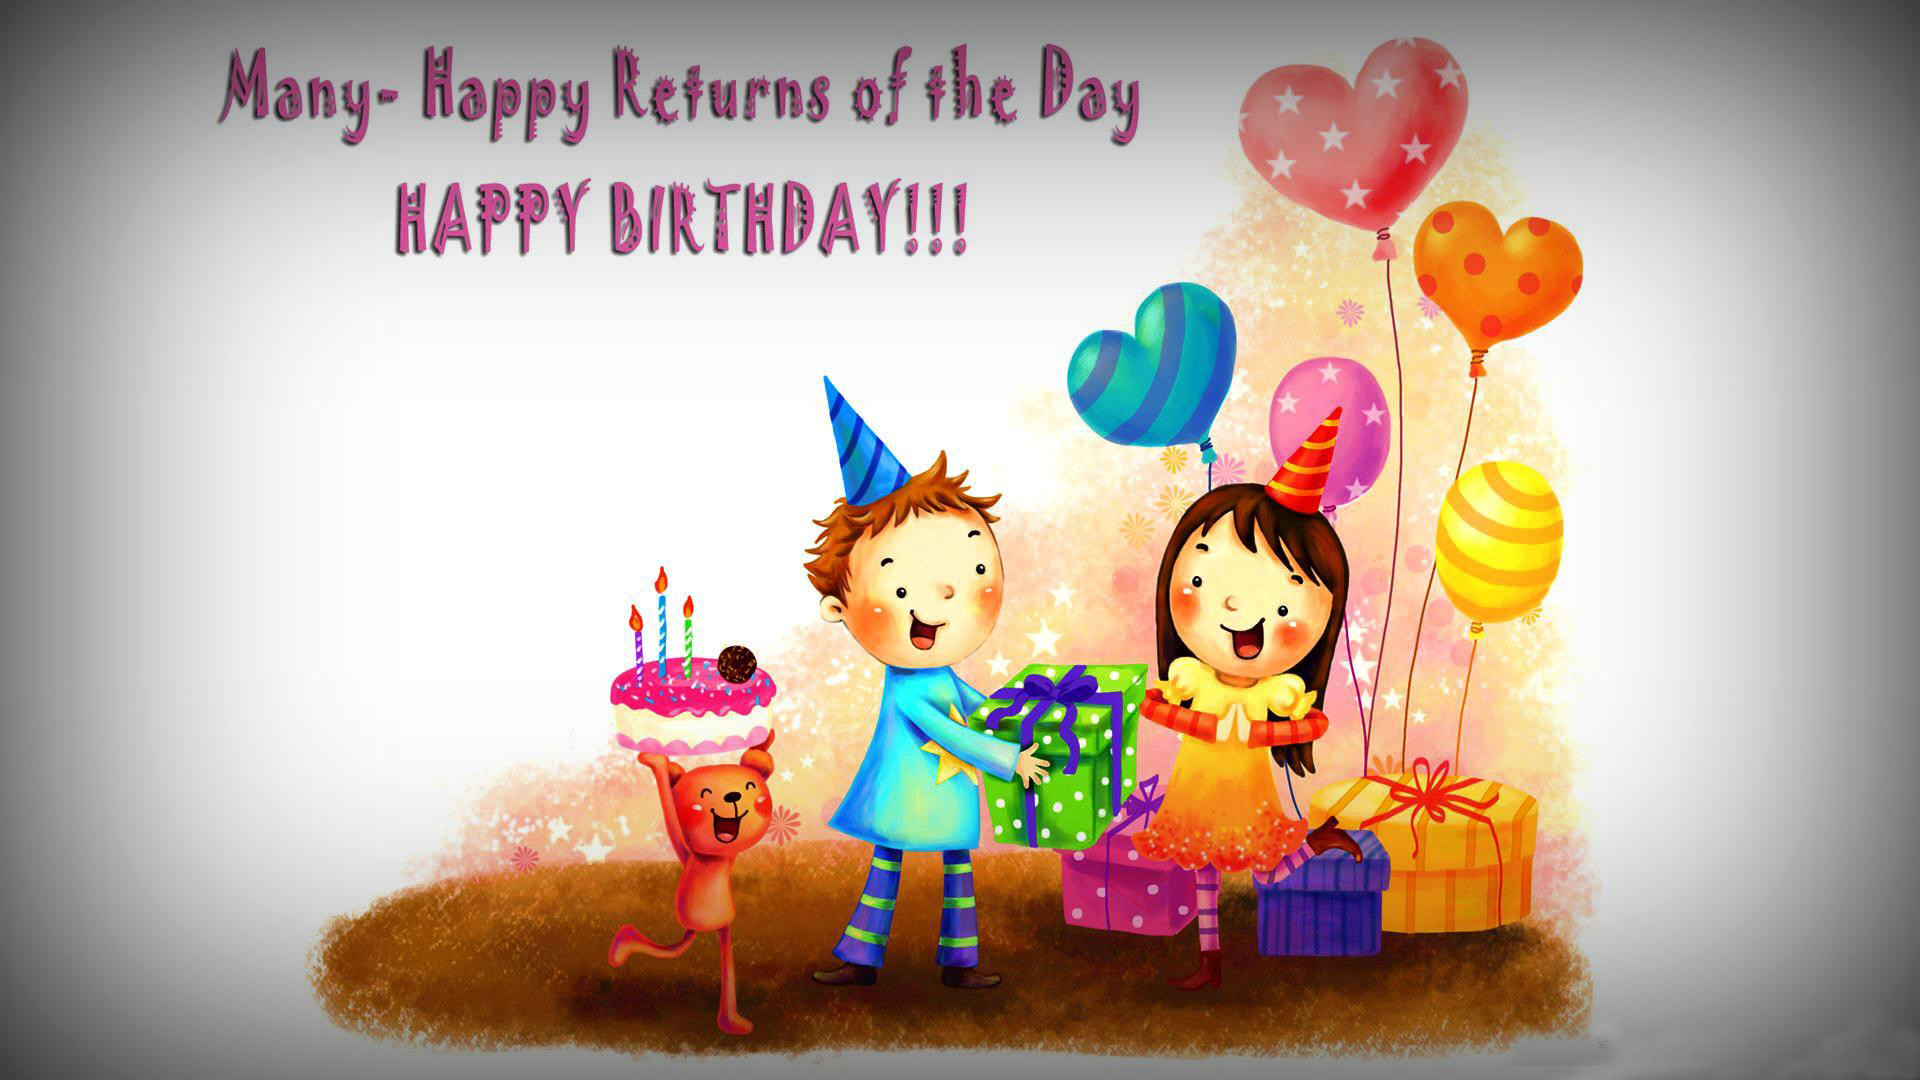 Happy birthday best friend animated photo for you